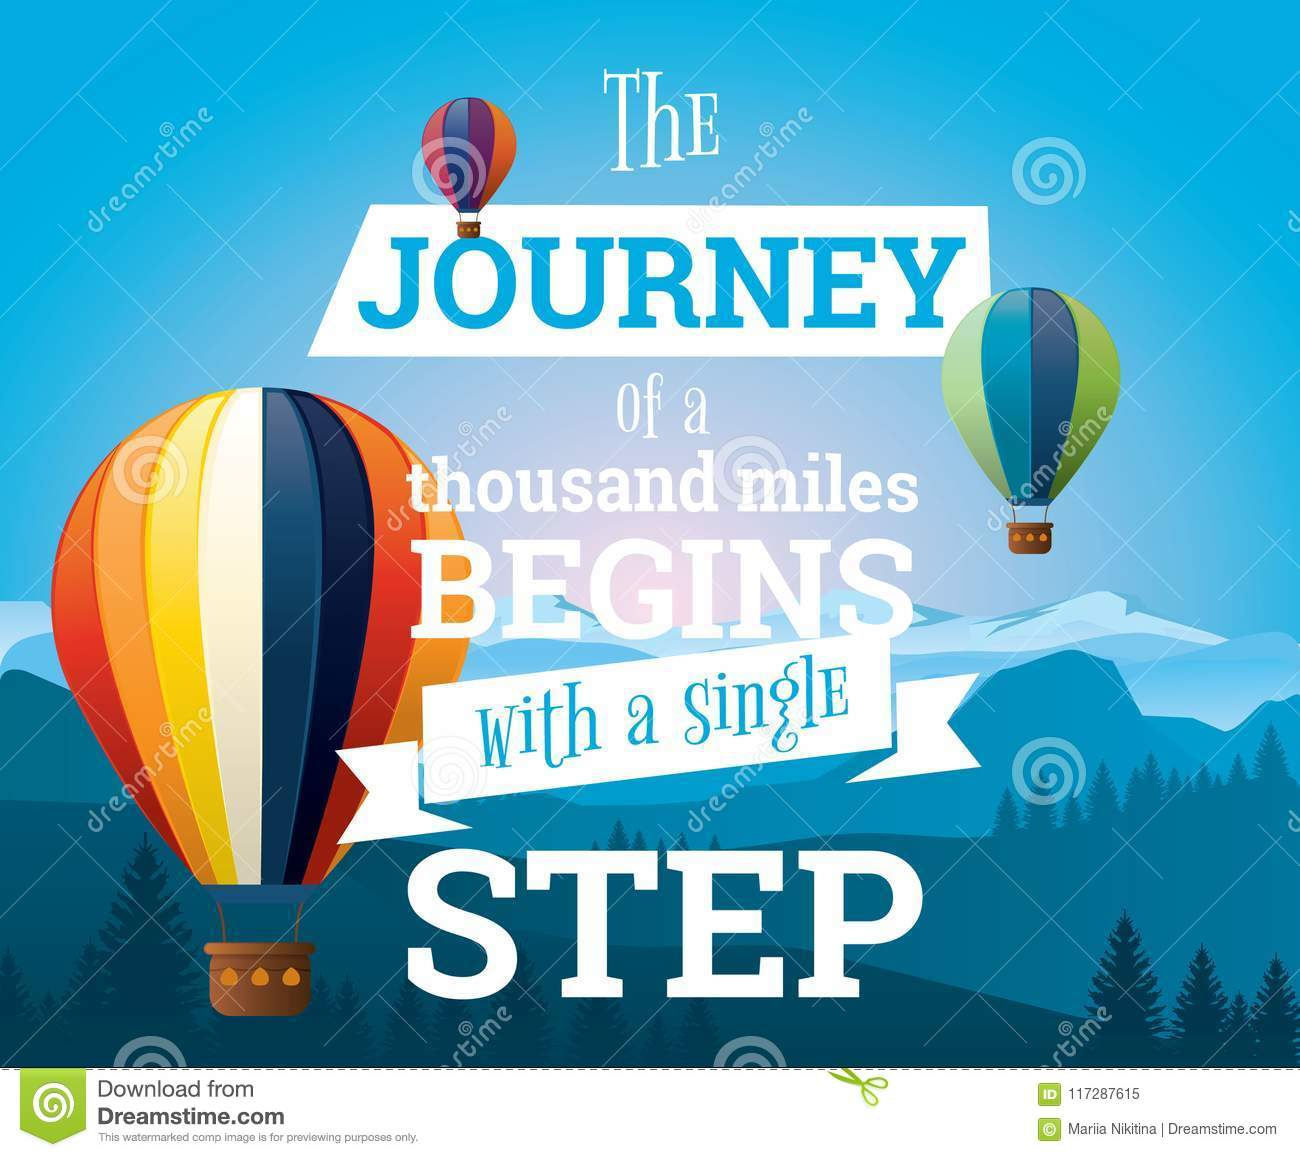 a journey of a thousand miles begins with one step